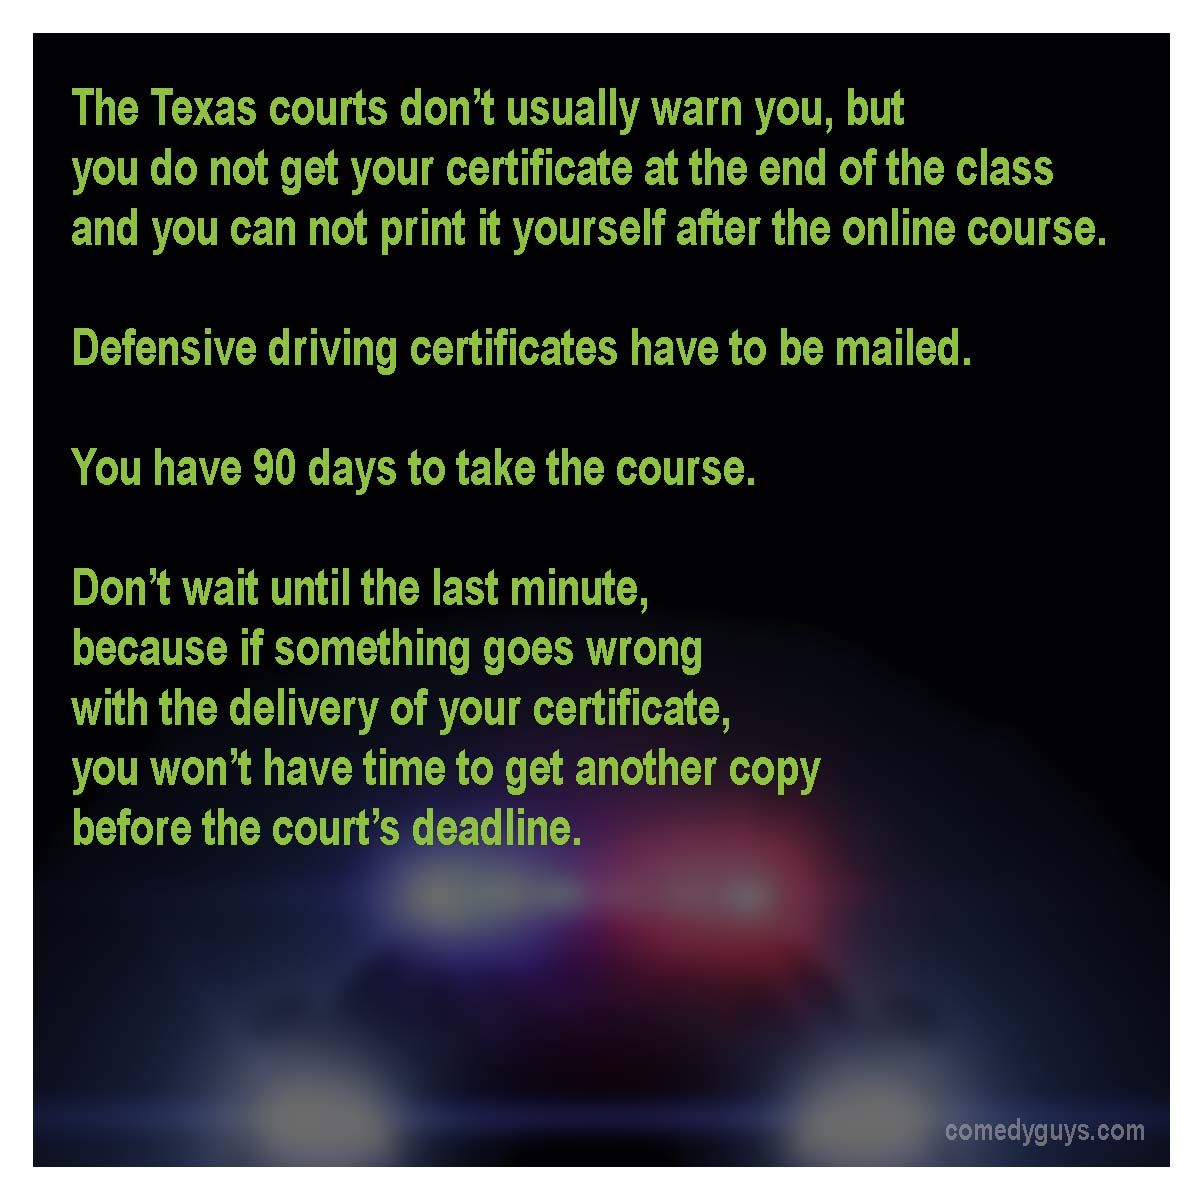 image about Defensive Driving Course Online Texas Printable Certificate called Texas courts dont always alert by yourself around this, nevertheless on your own do